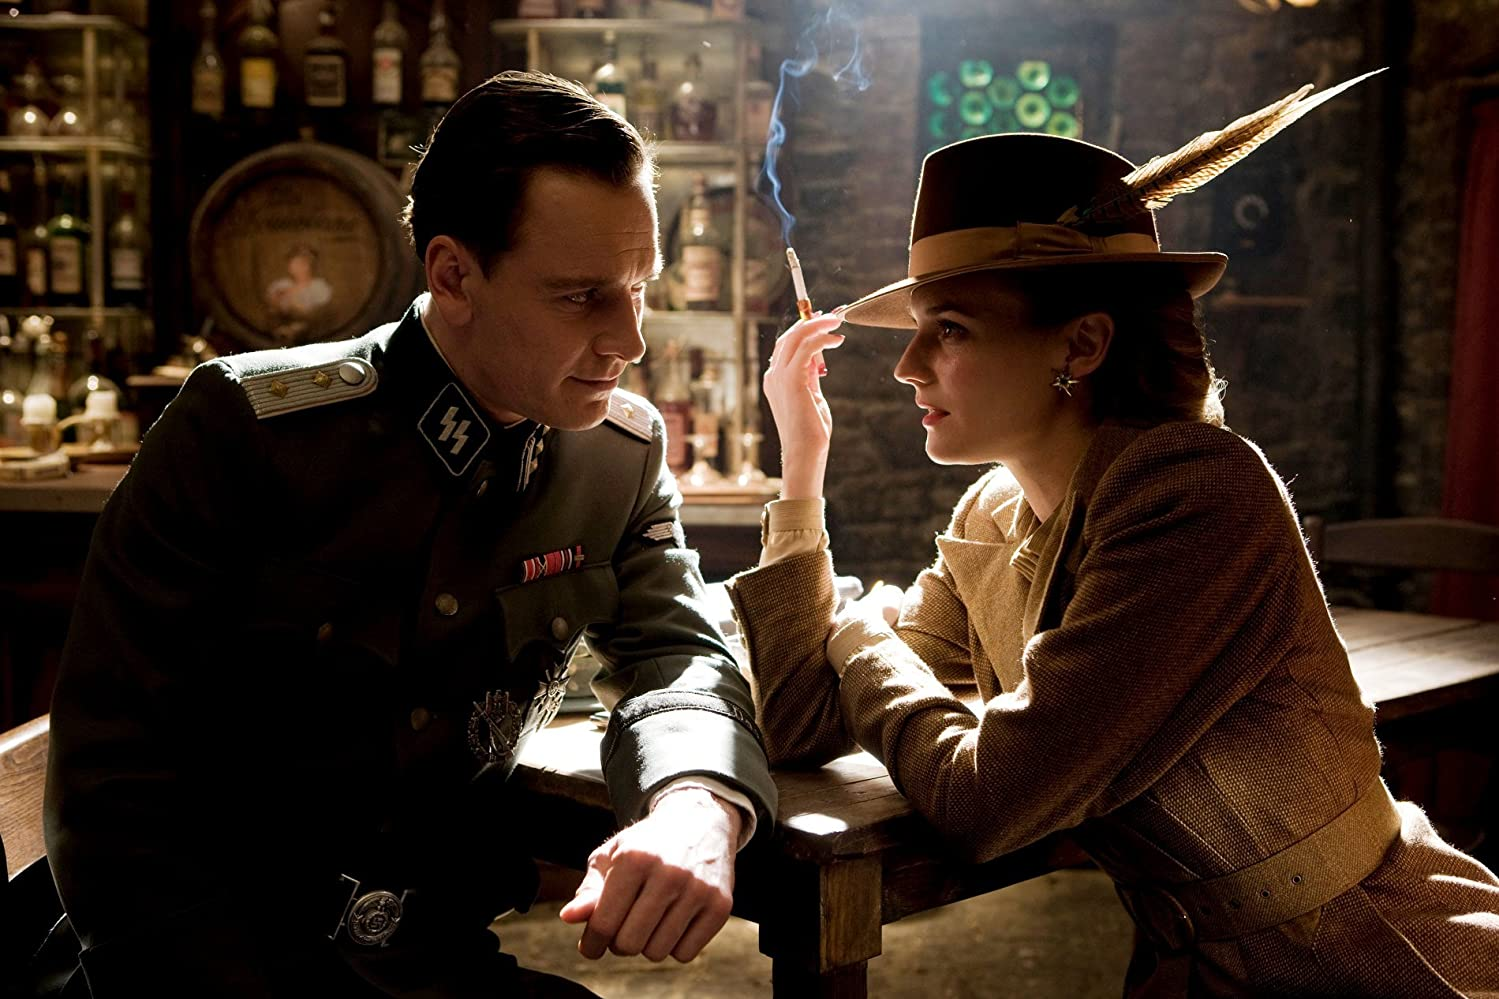 Michael Fassbender and Diane Kruger in Inglourious Basterds (2009)